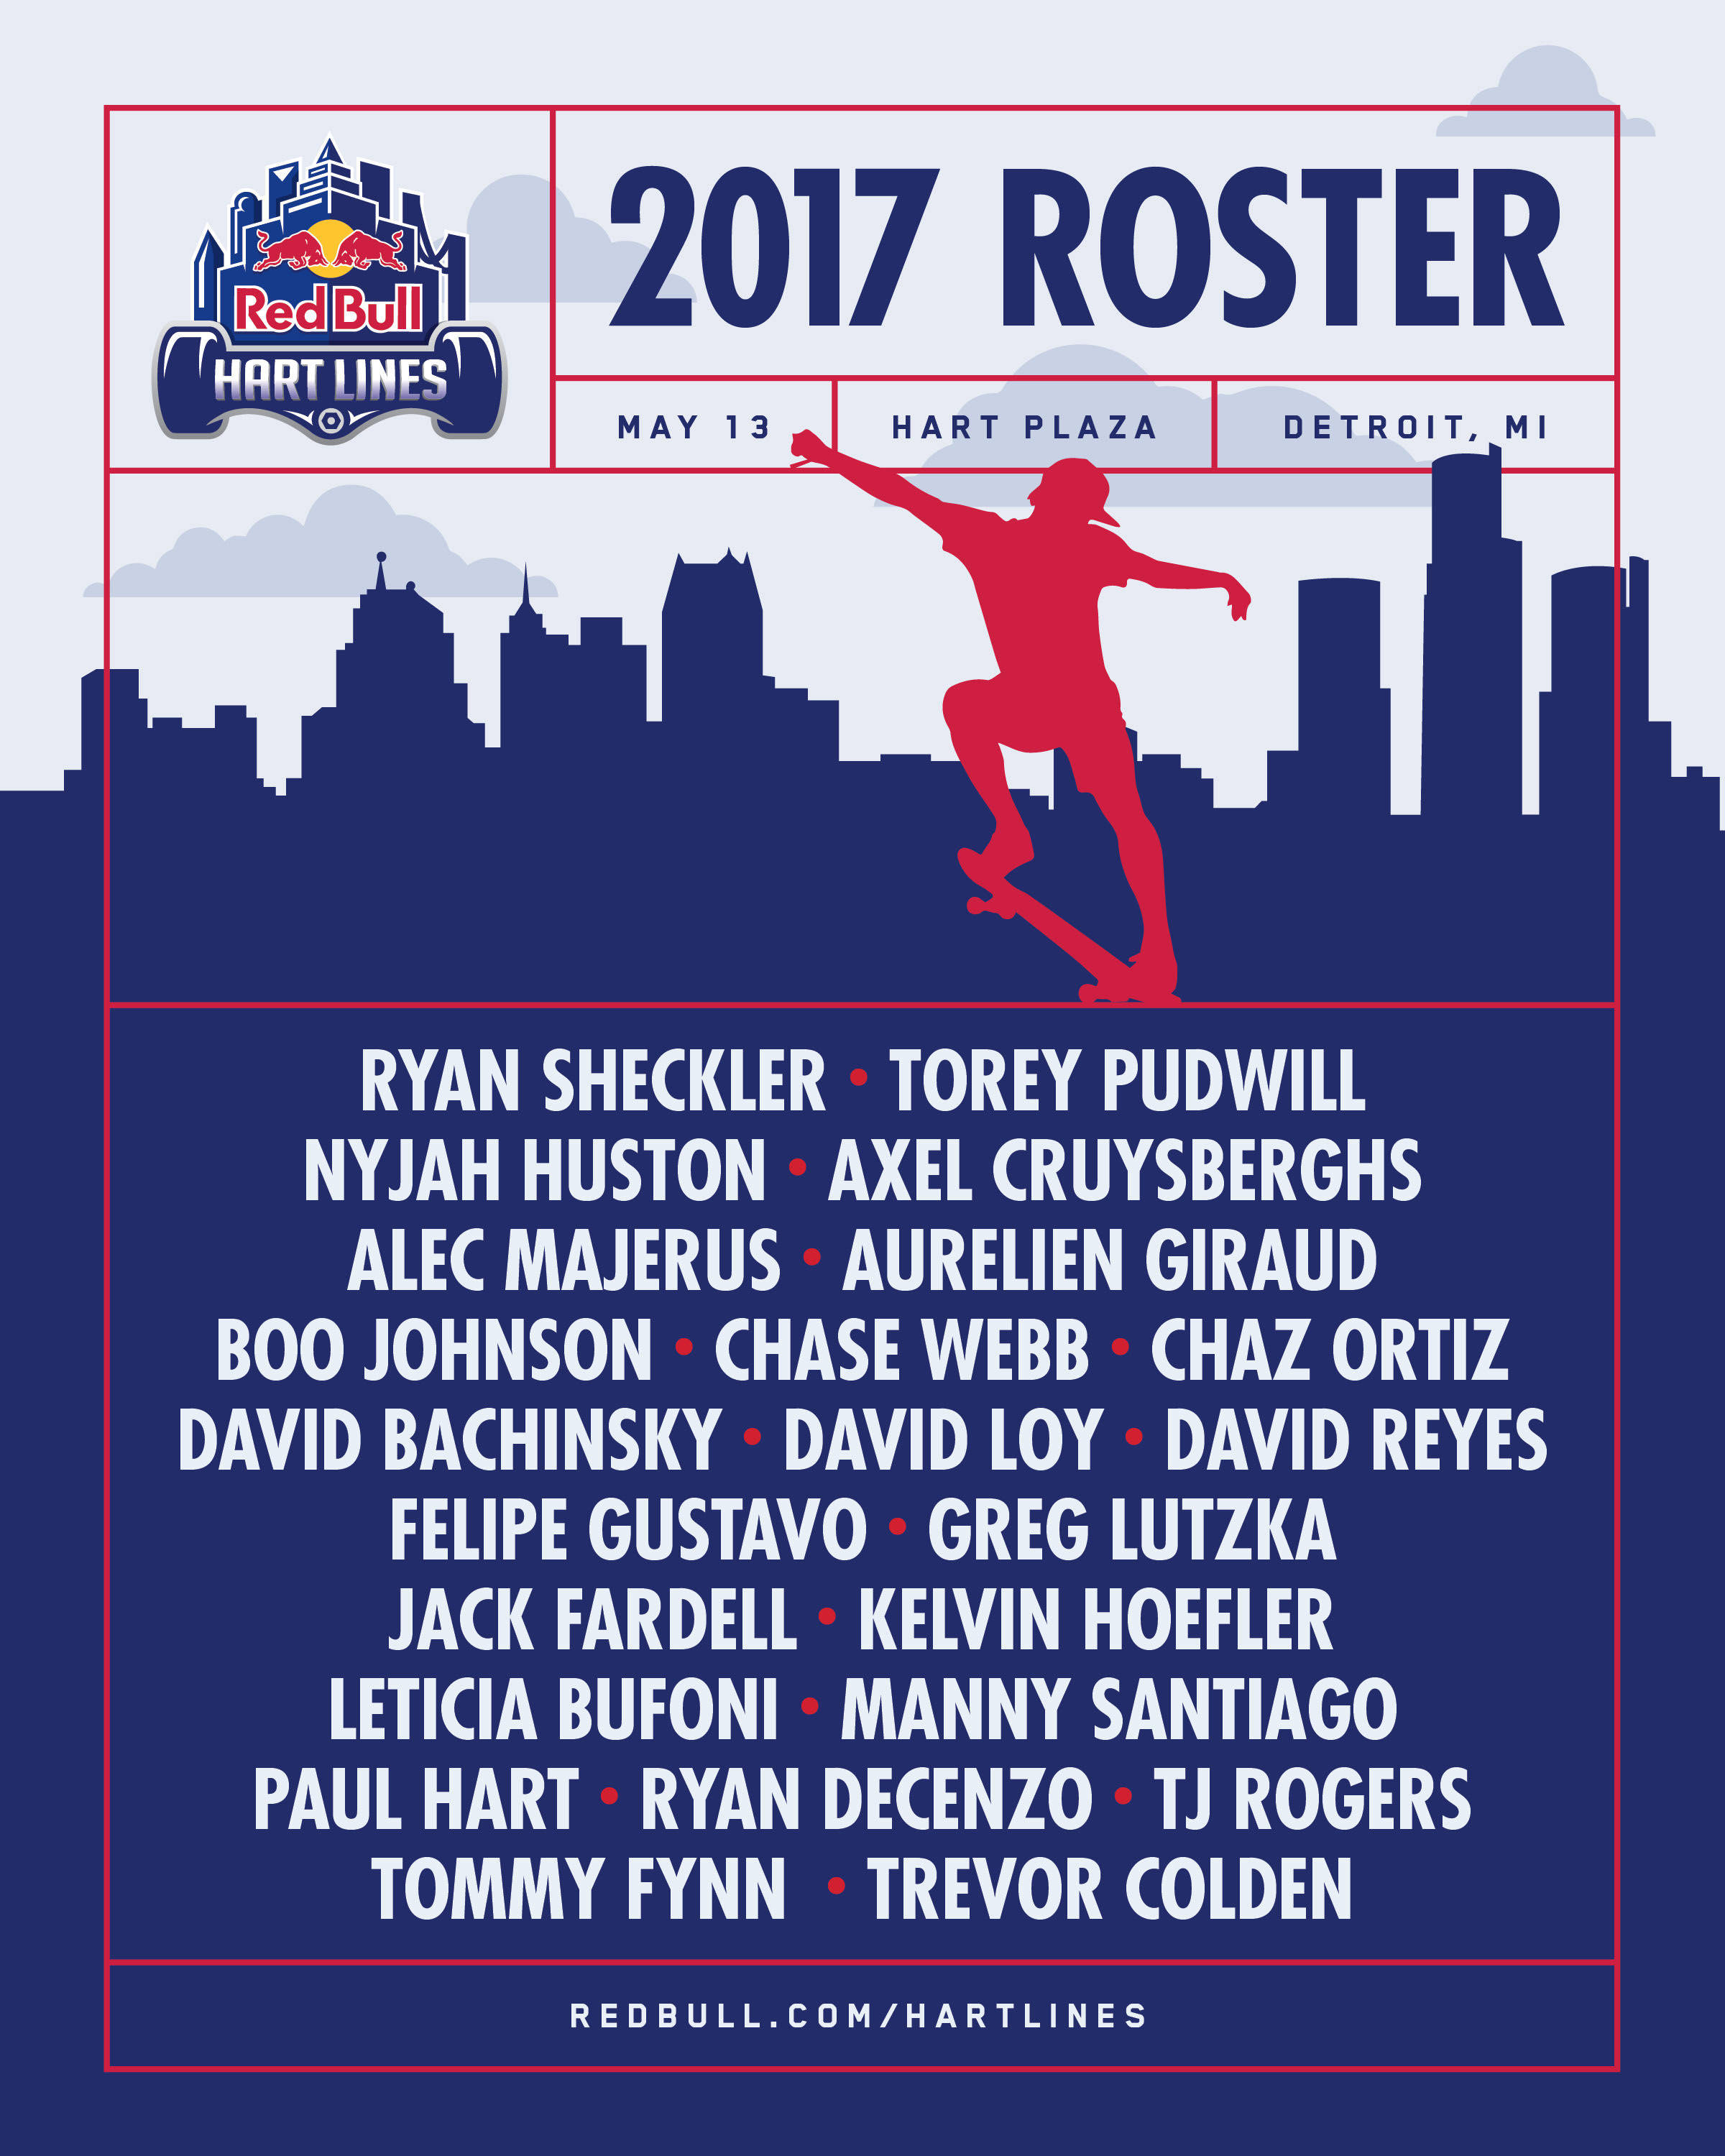 RED BULL HART LINES -- 2017 Roster